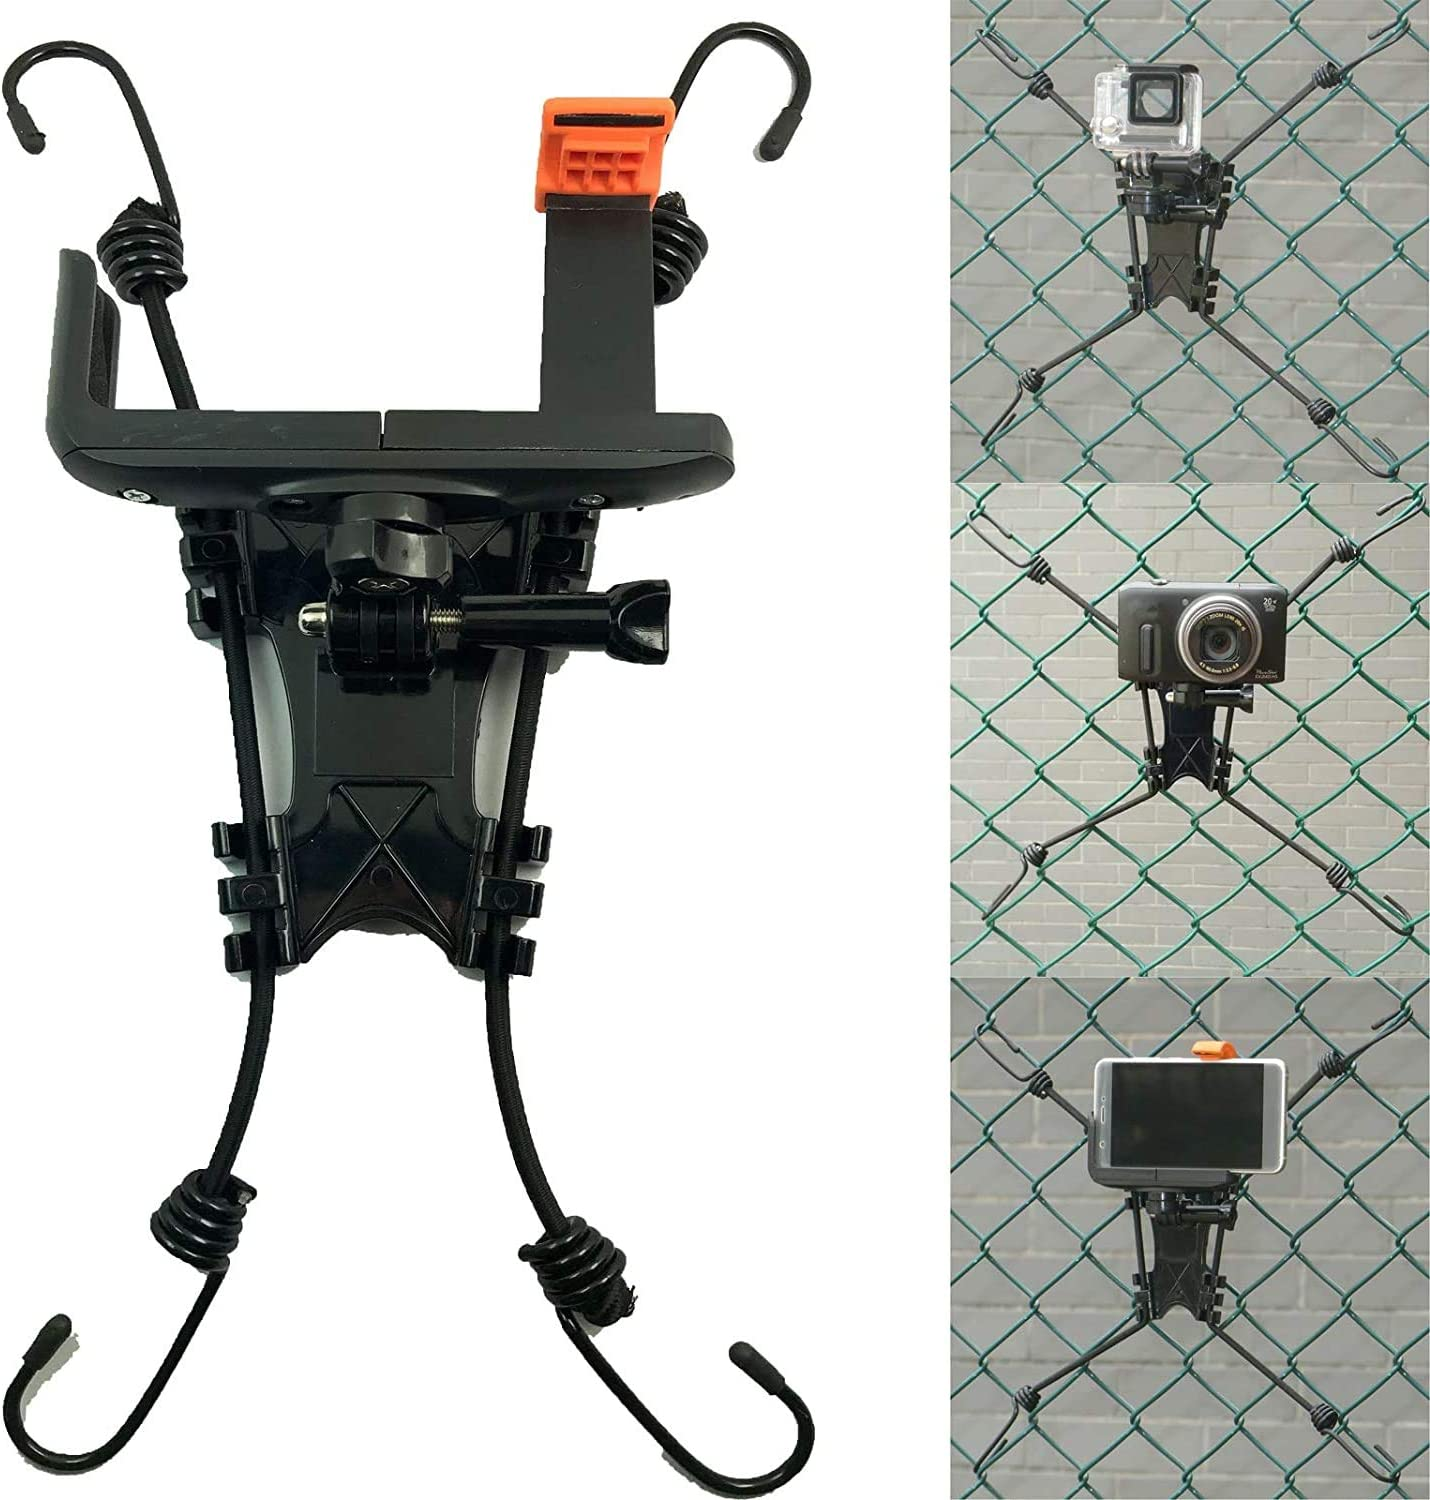 Universal Action Camera Backstop Chain Link Fence Mount for Action Camera/Digital Camera/Smartphone for School Training and Outdoor Sports.for Record a Baseball or Softball Game